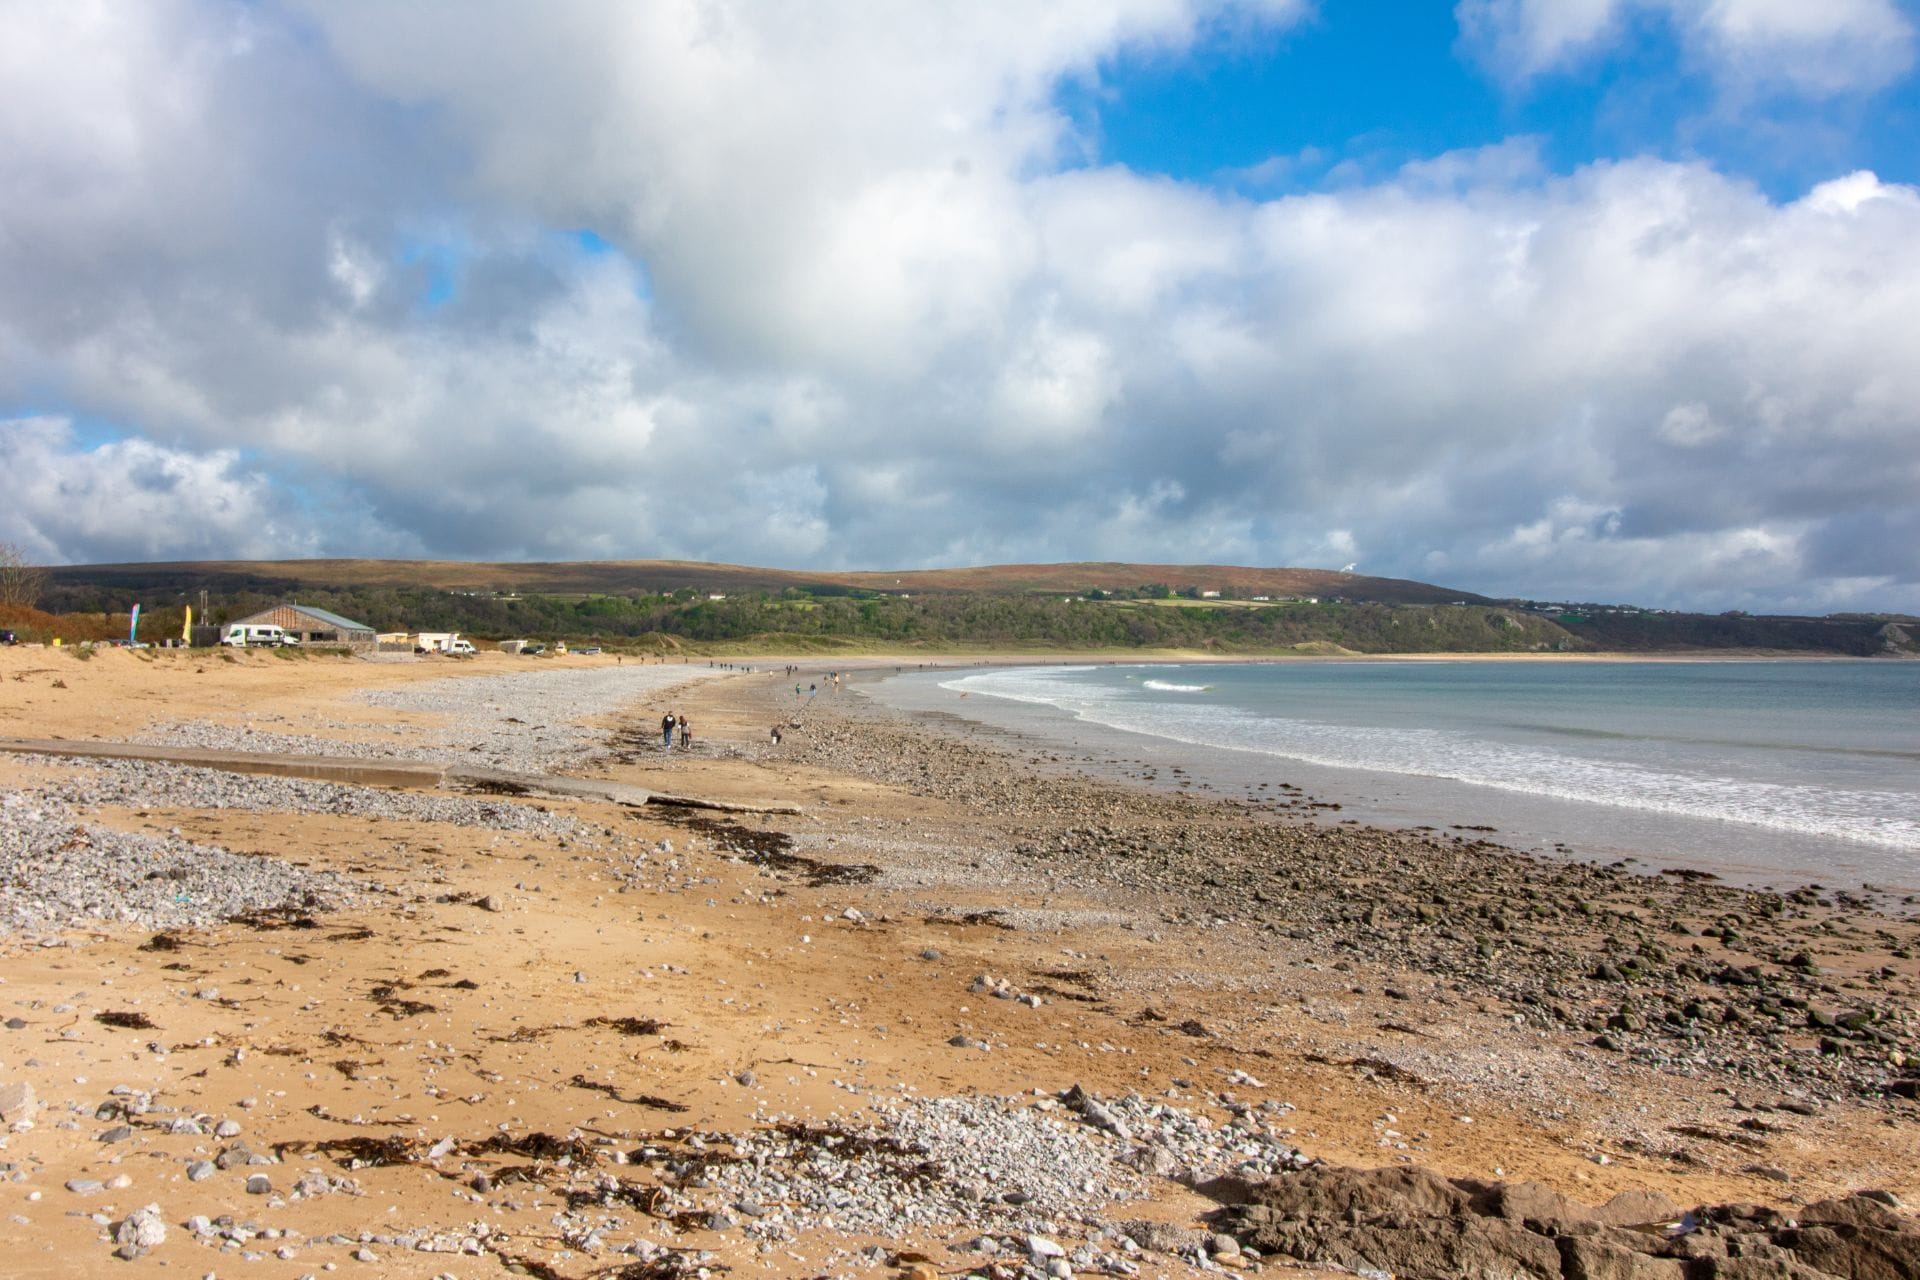 sand-and-stone-beach-against-blue-skies-the-gower-swansea-bay-wales-uk